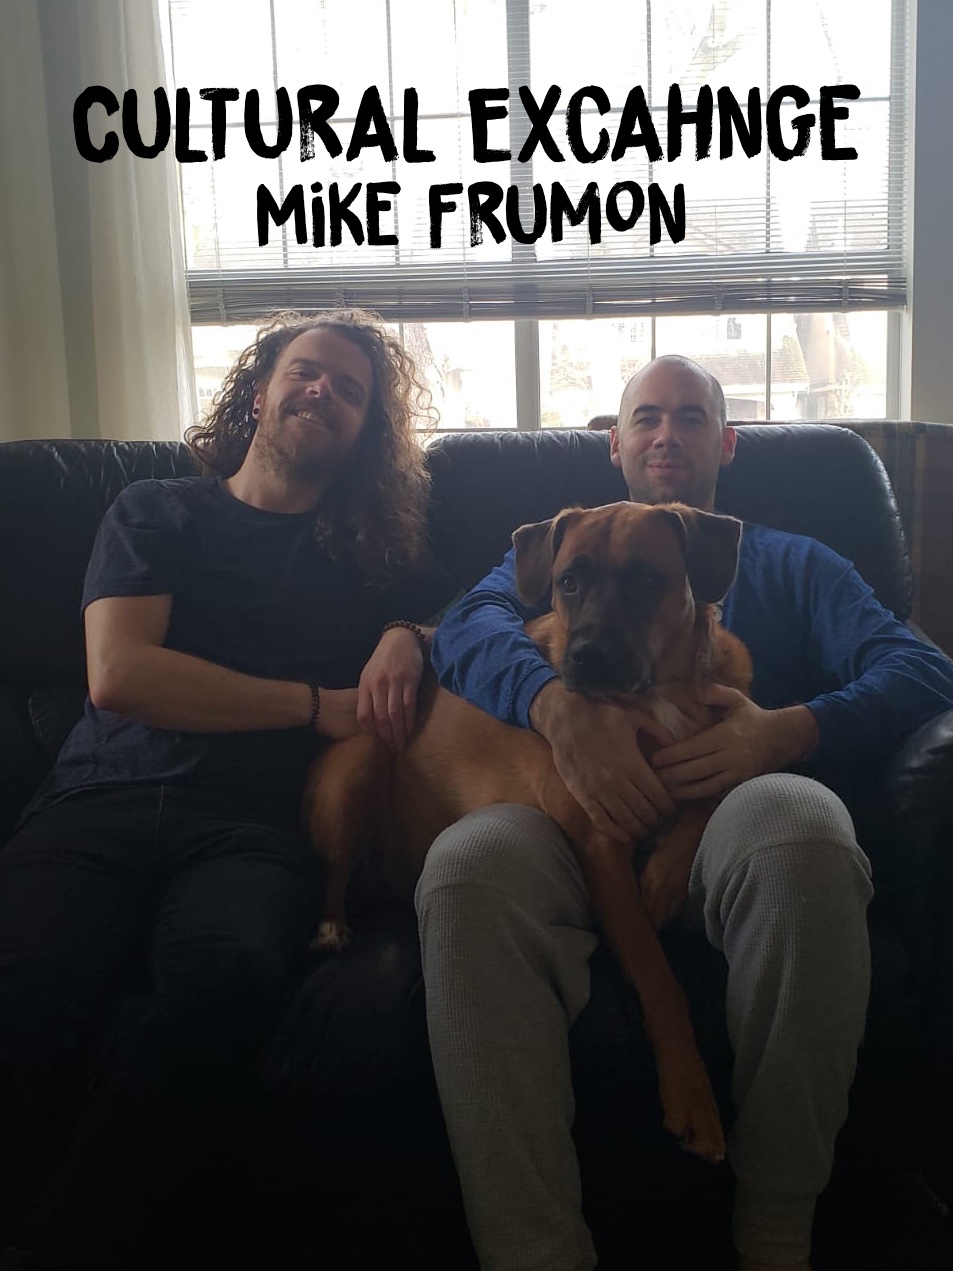 Mike Frumon